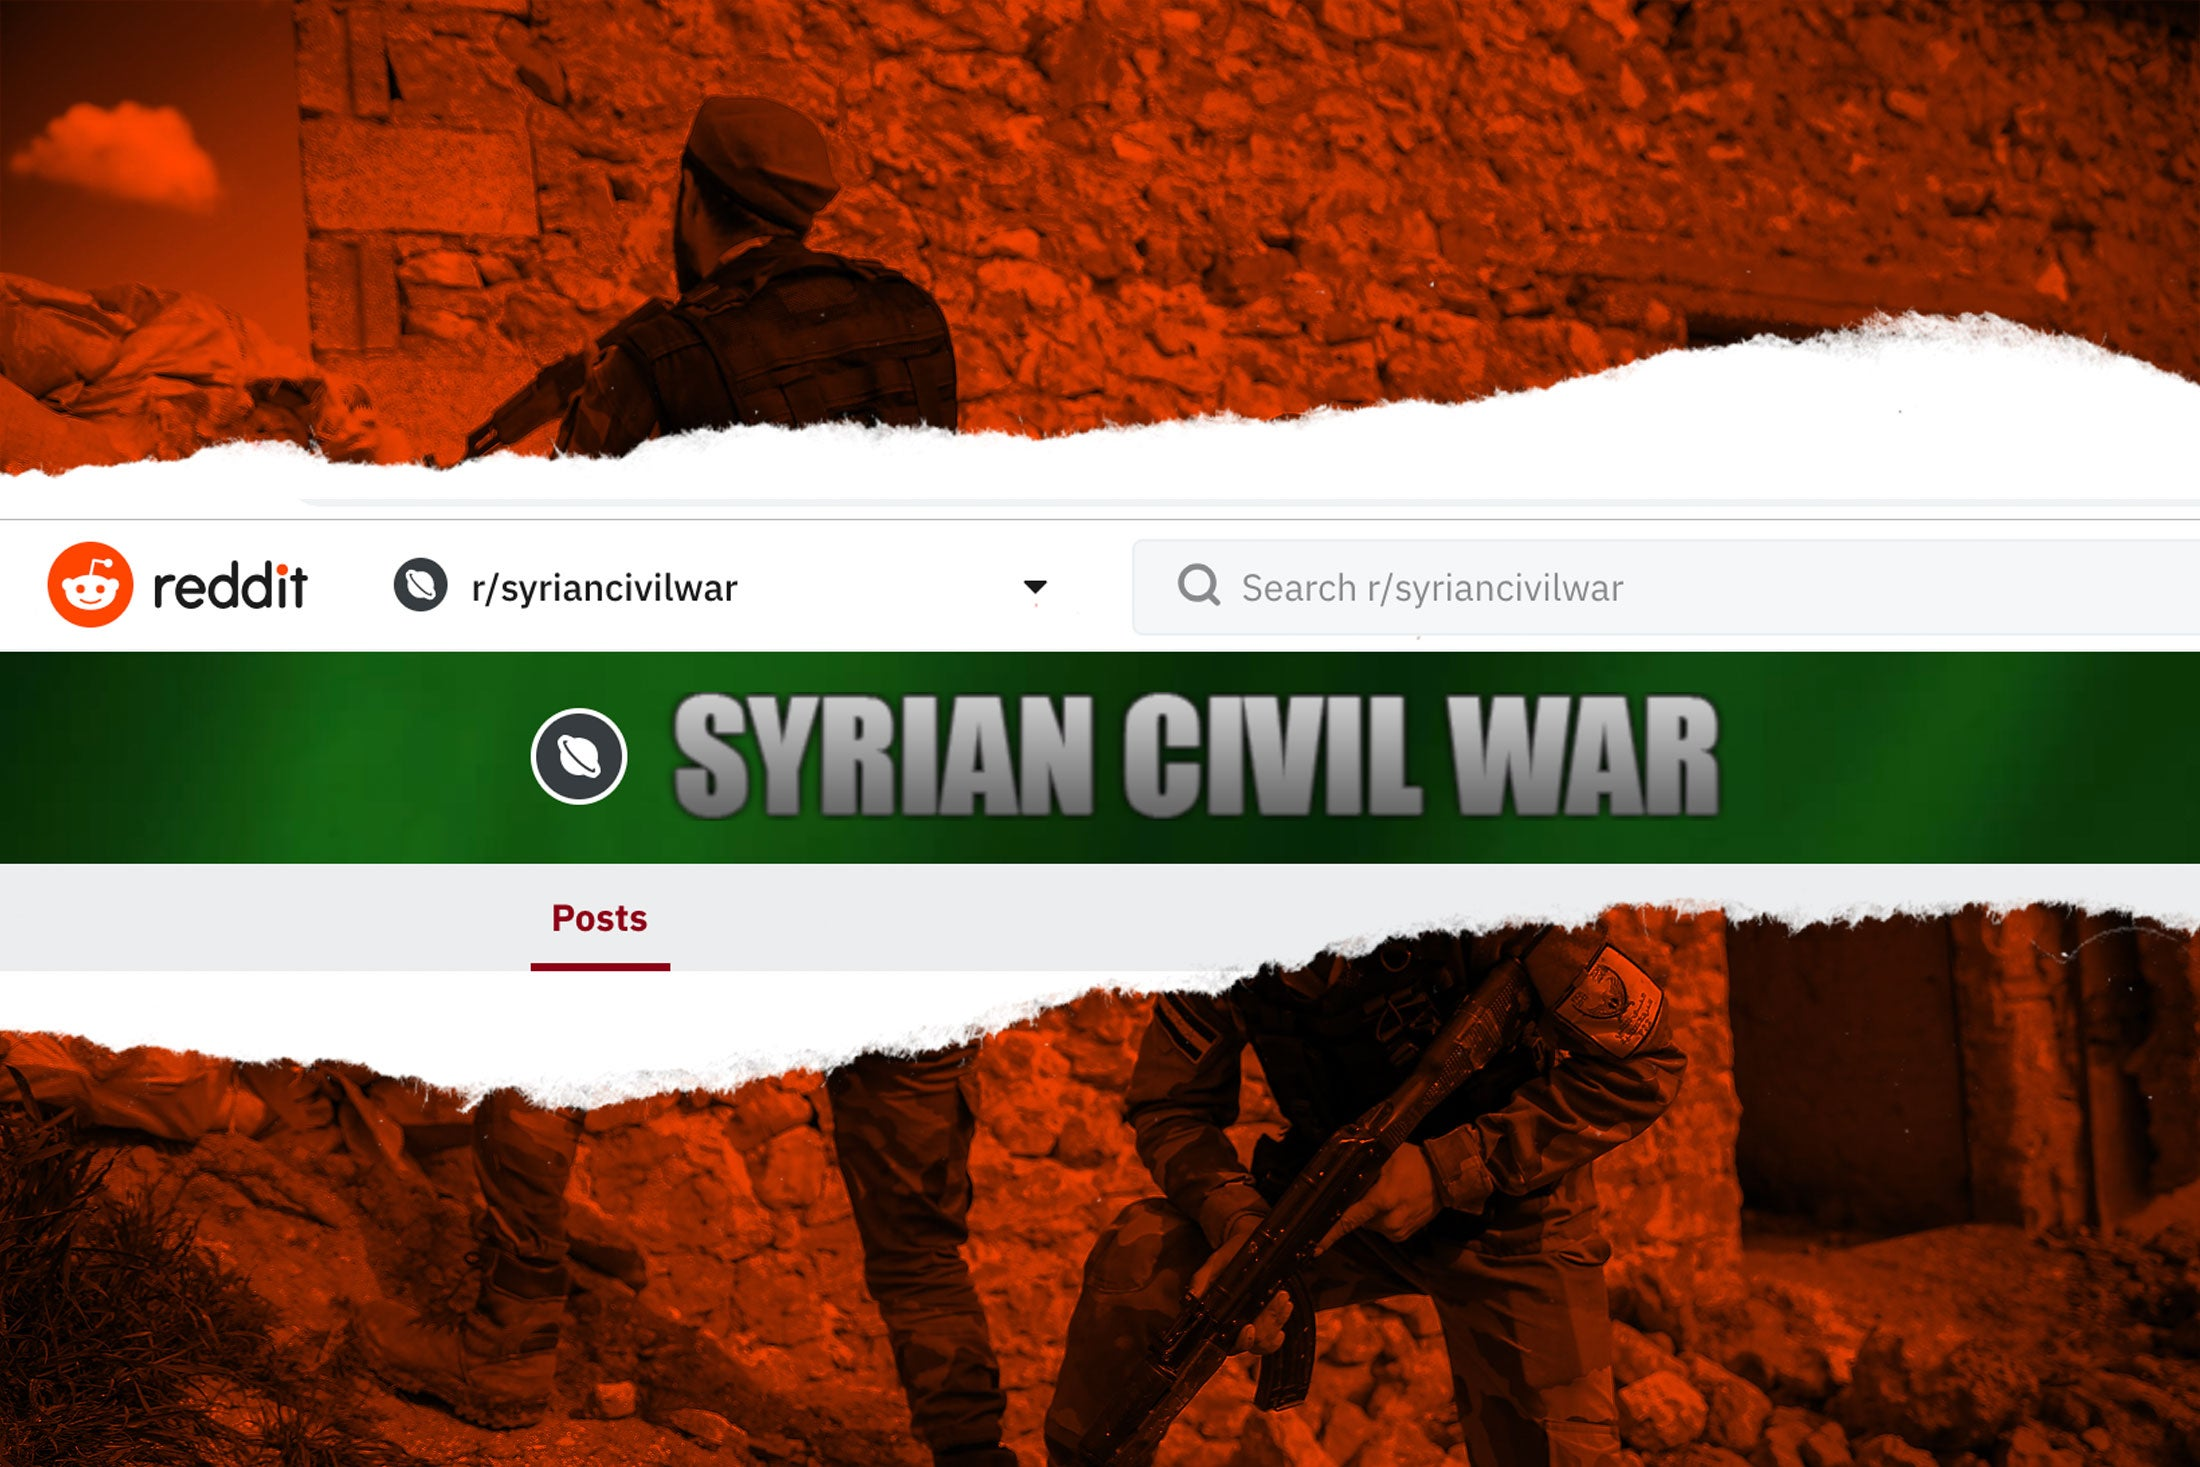 A screenshot of the r/syriancivilwar header over an image of Syrian fighters.